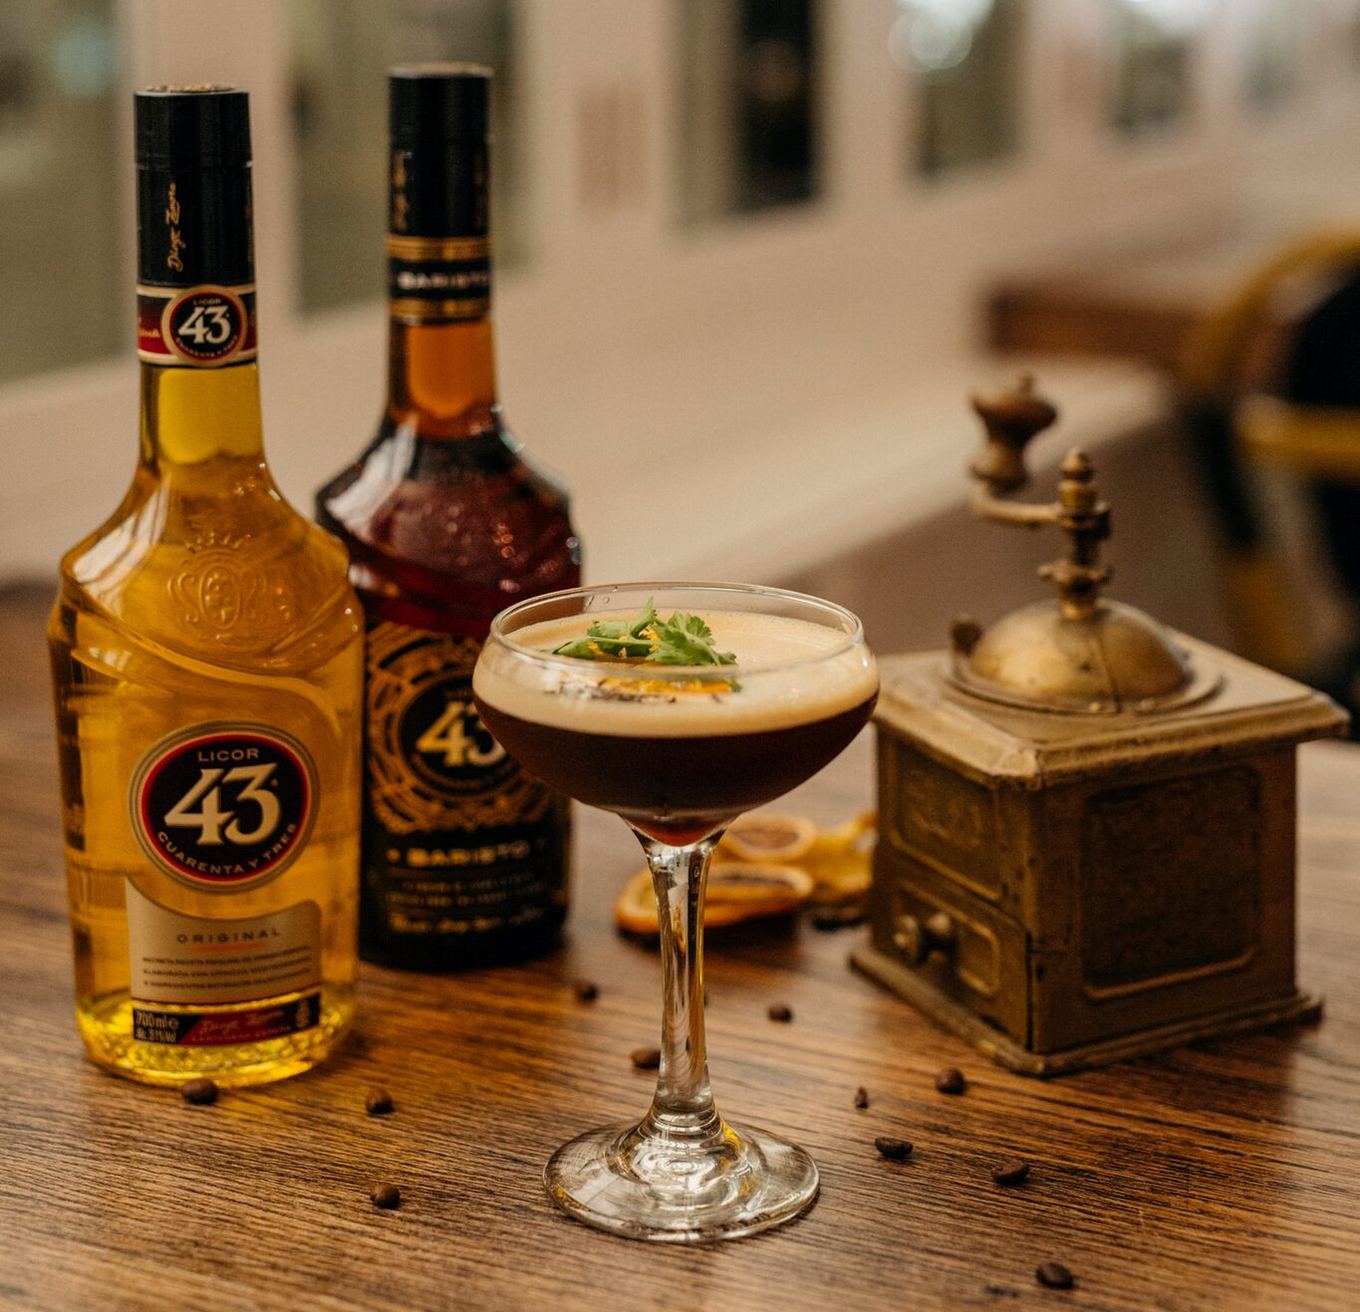 Licor 43 Most Passionate Bartender Team Up image 1